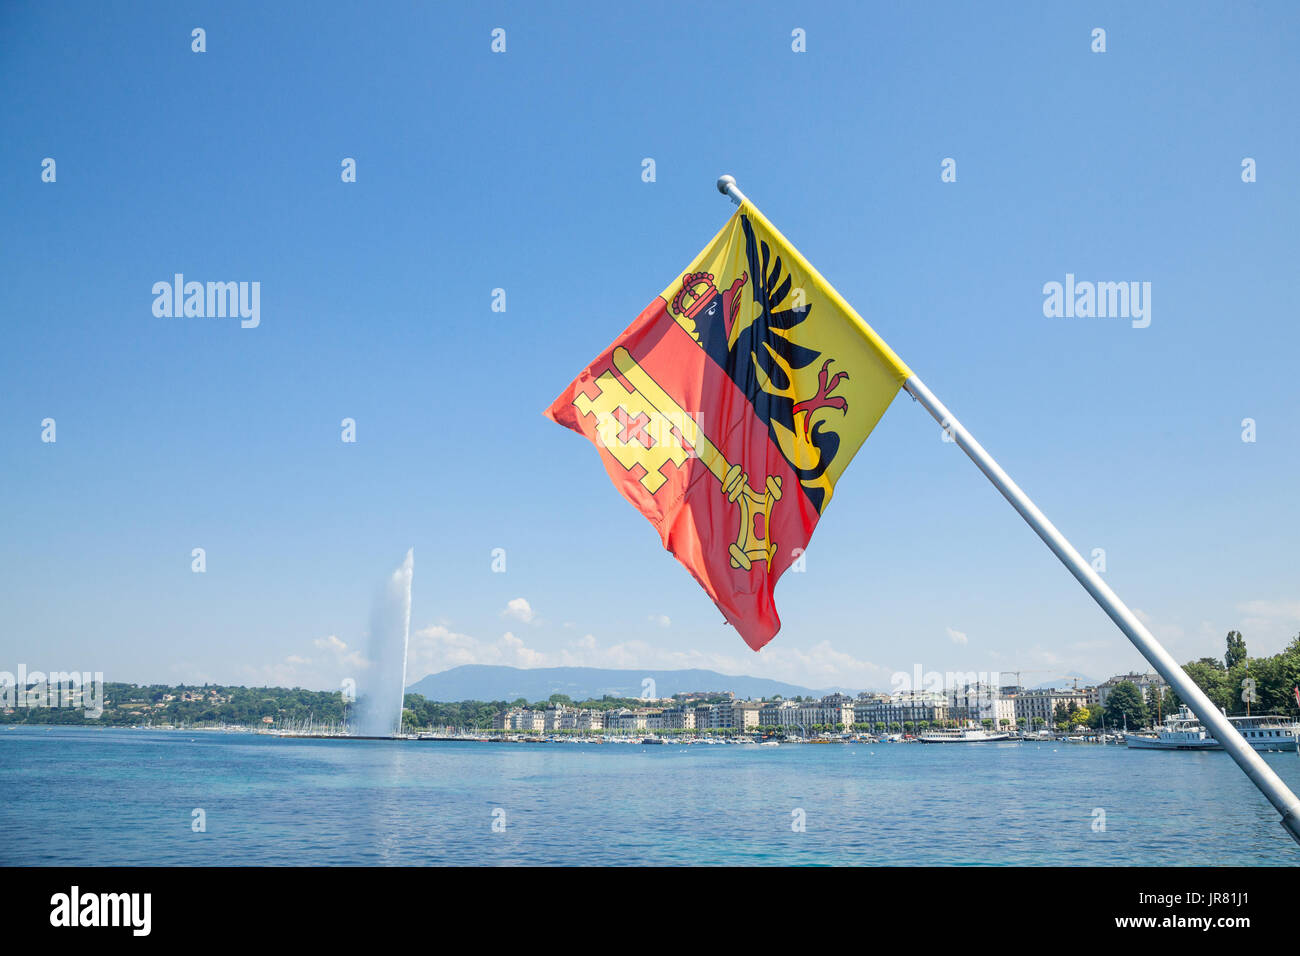 Flag of the Geneva Canton in the city center of Geneva, on the Leman lake. The iconic Jet d'Eau (Water Jet) can be seen in the background  Picture of  - Stock Image